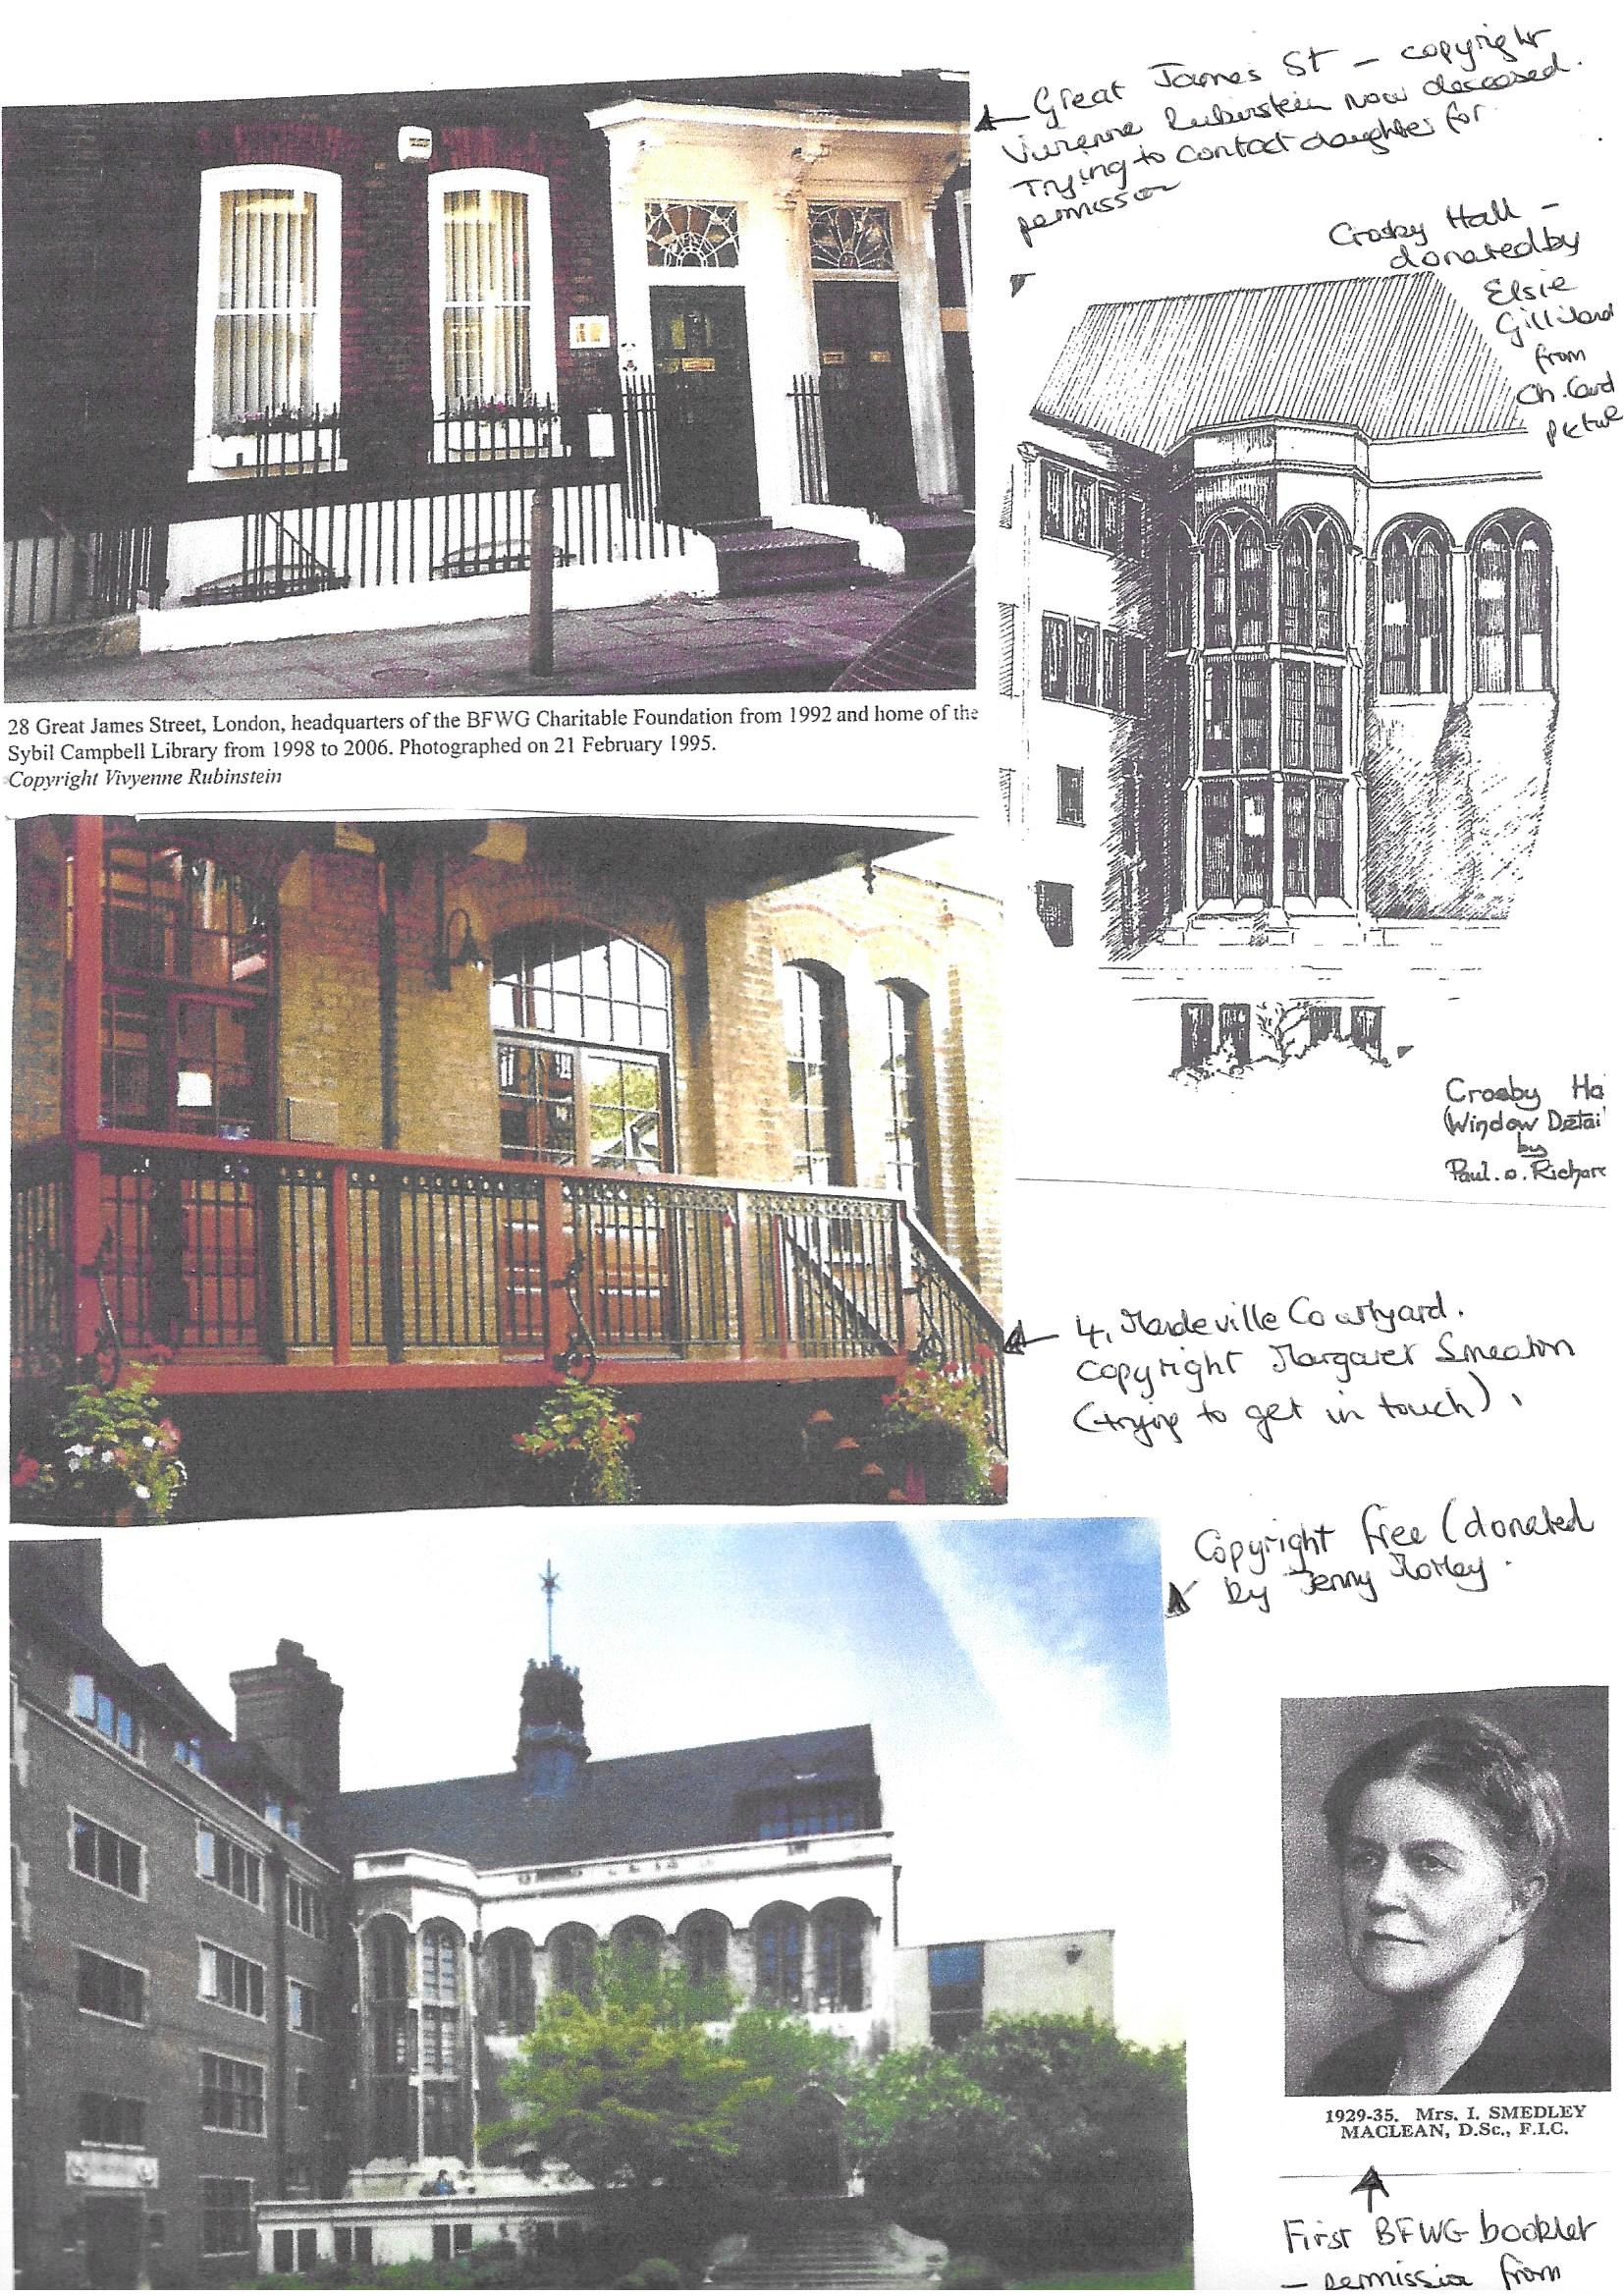 A scanned image of a collage showing a collection of historic images. Includes photographs and drawings of buildings and notable people.